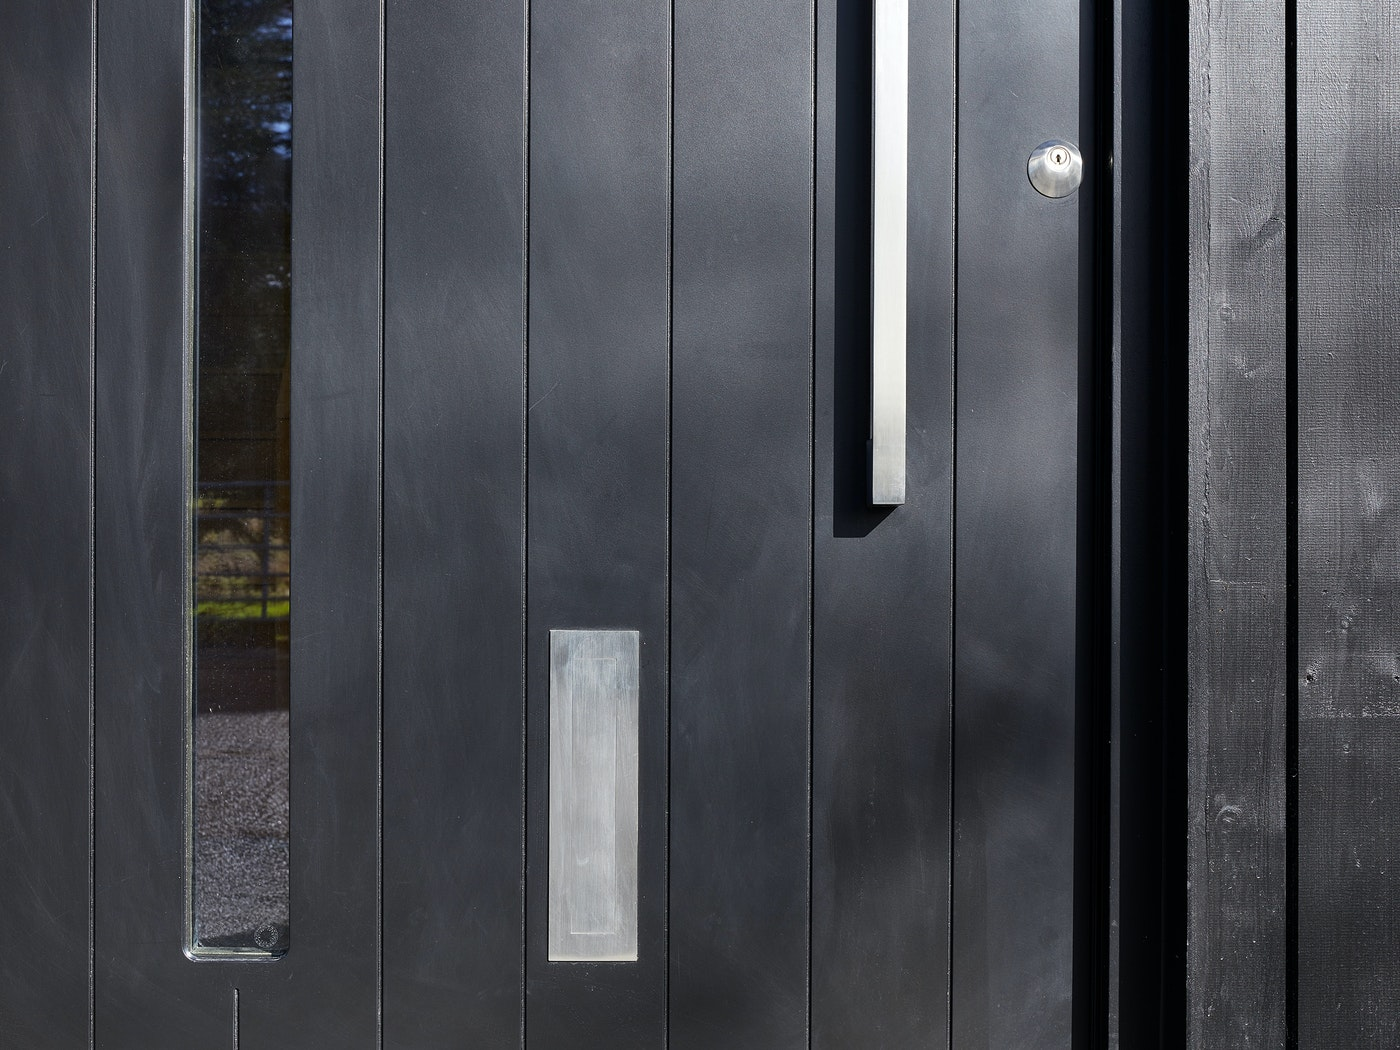 This black door design blends seamlessly into the vertical black cladding